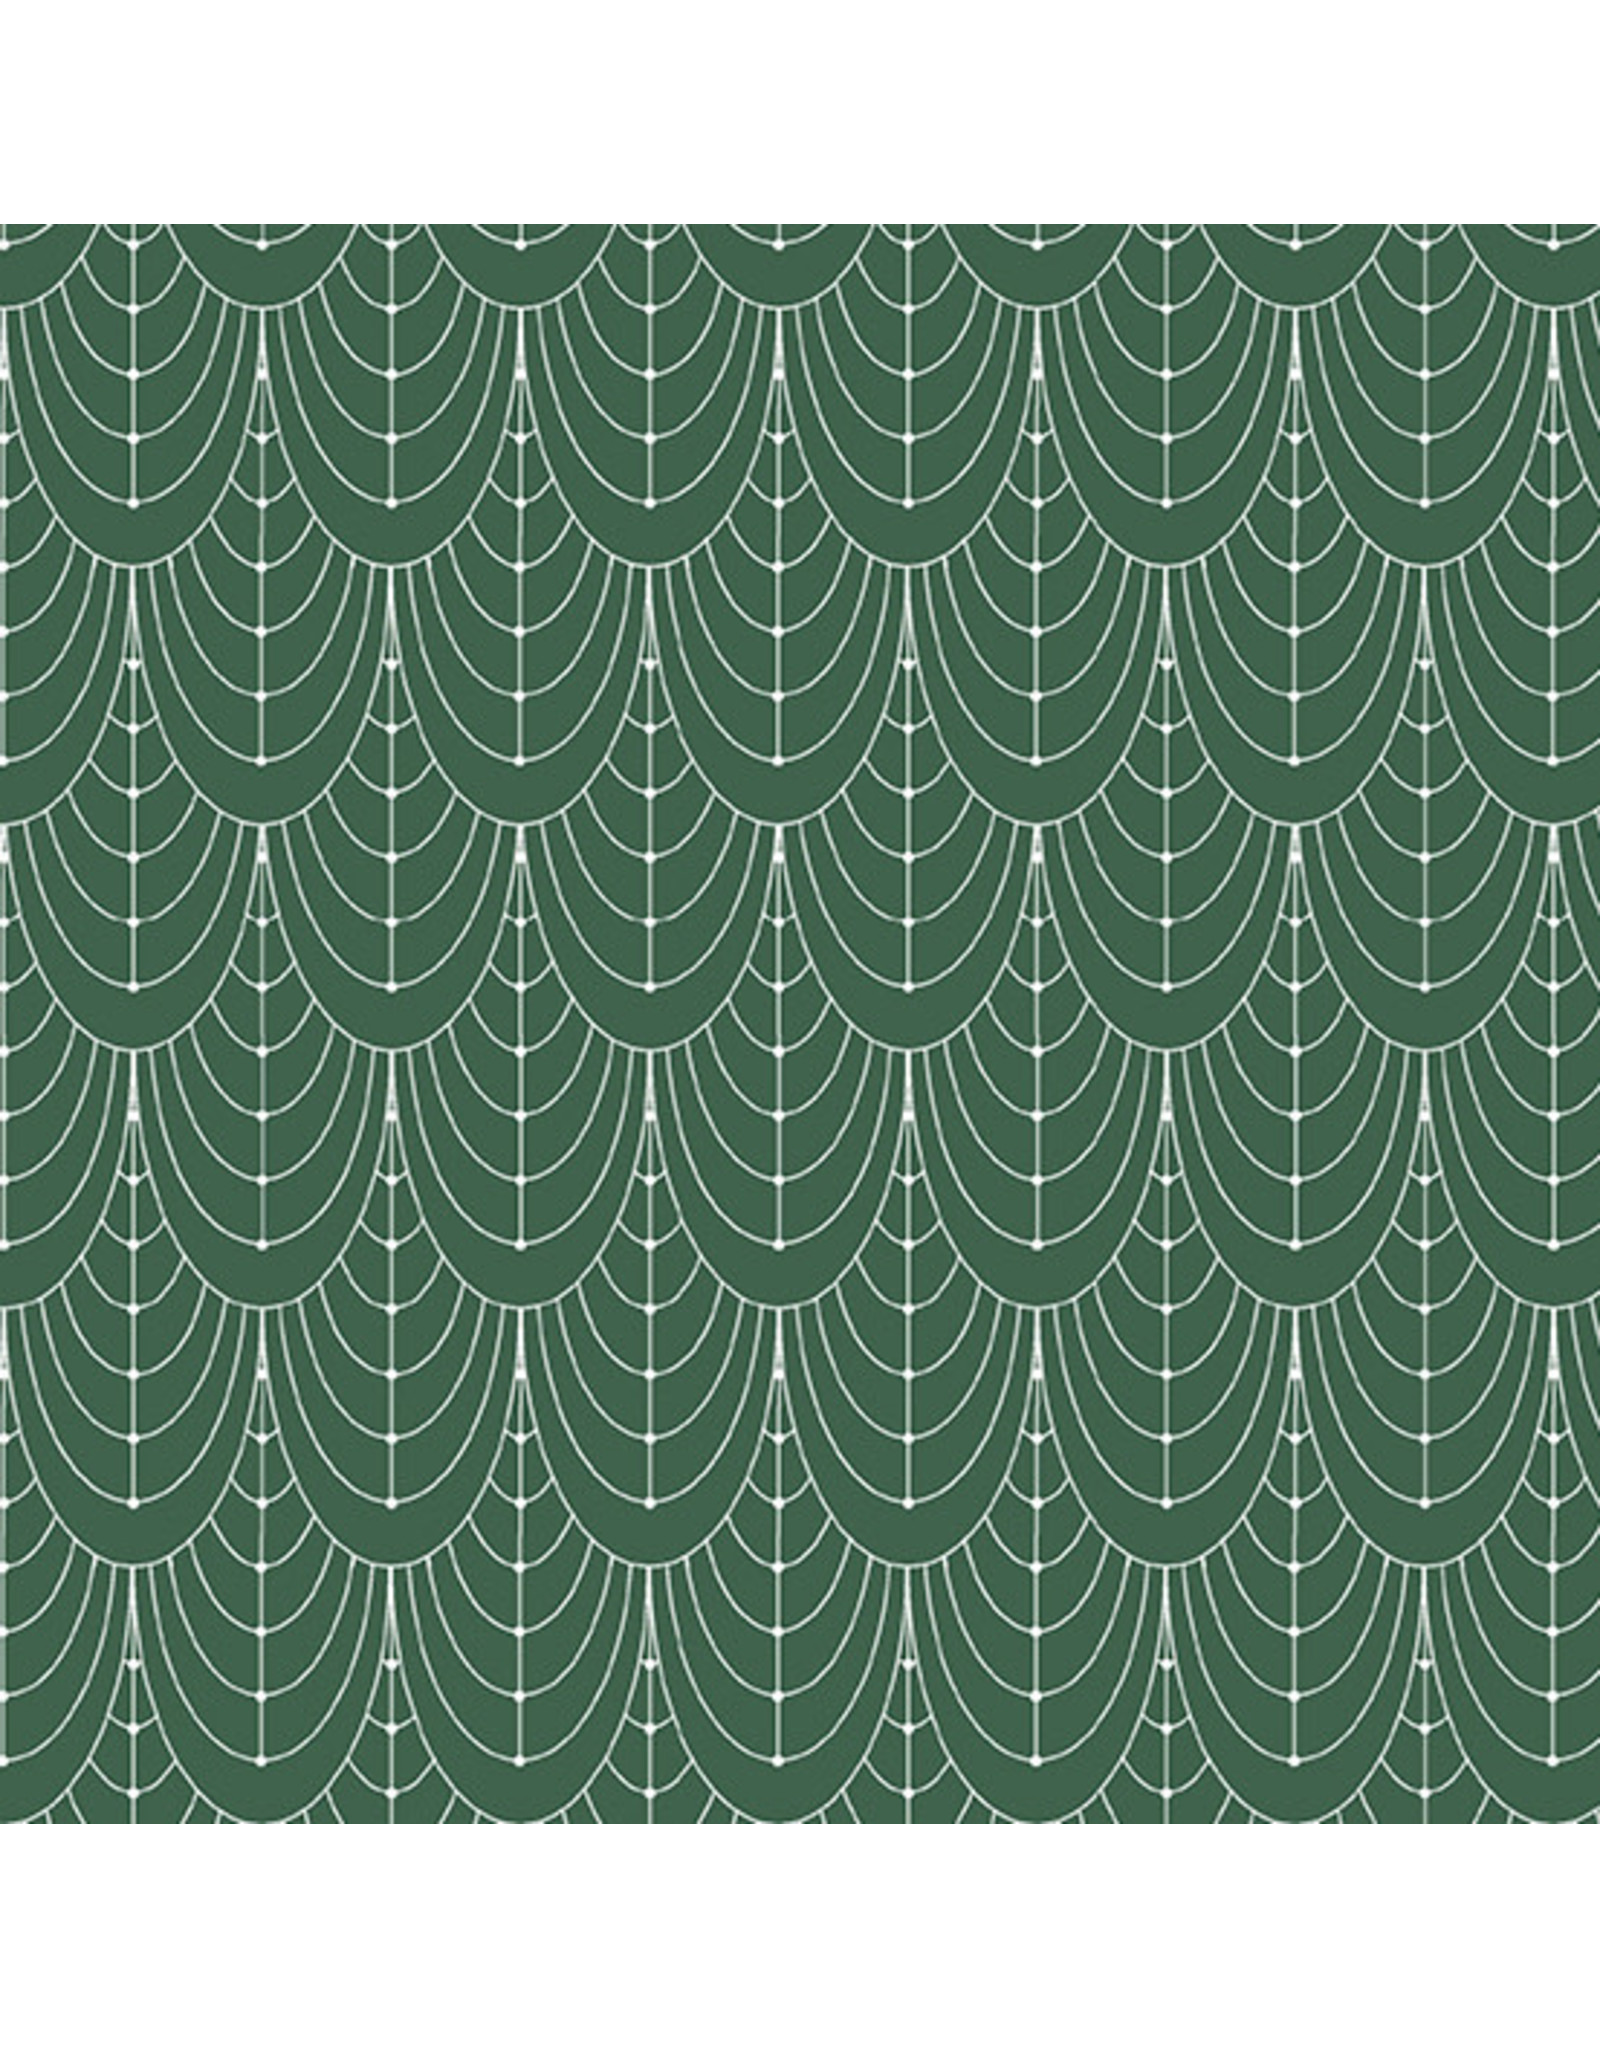 Giucy Giuce Century Prints, Deco Curtains in Hunter, Fabric Half-Yards